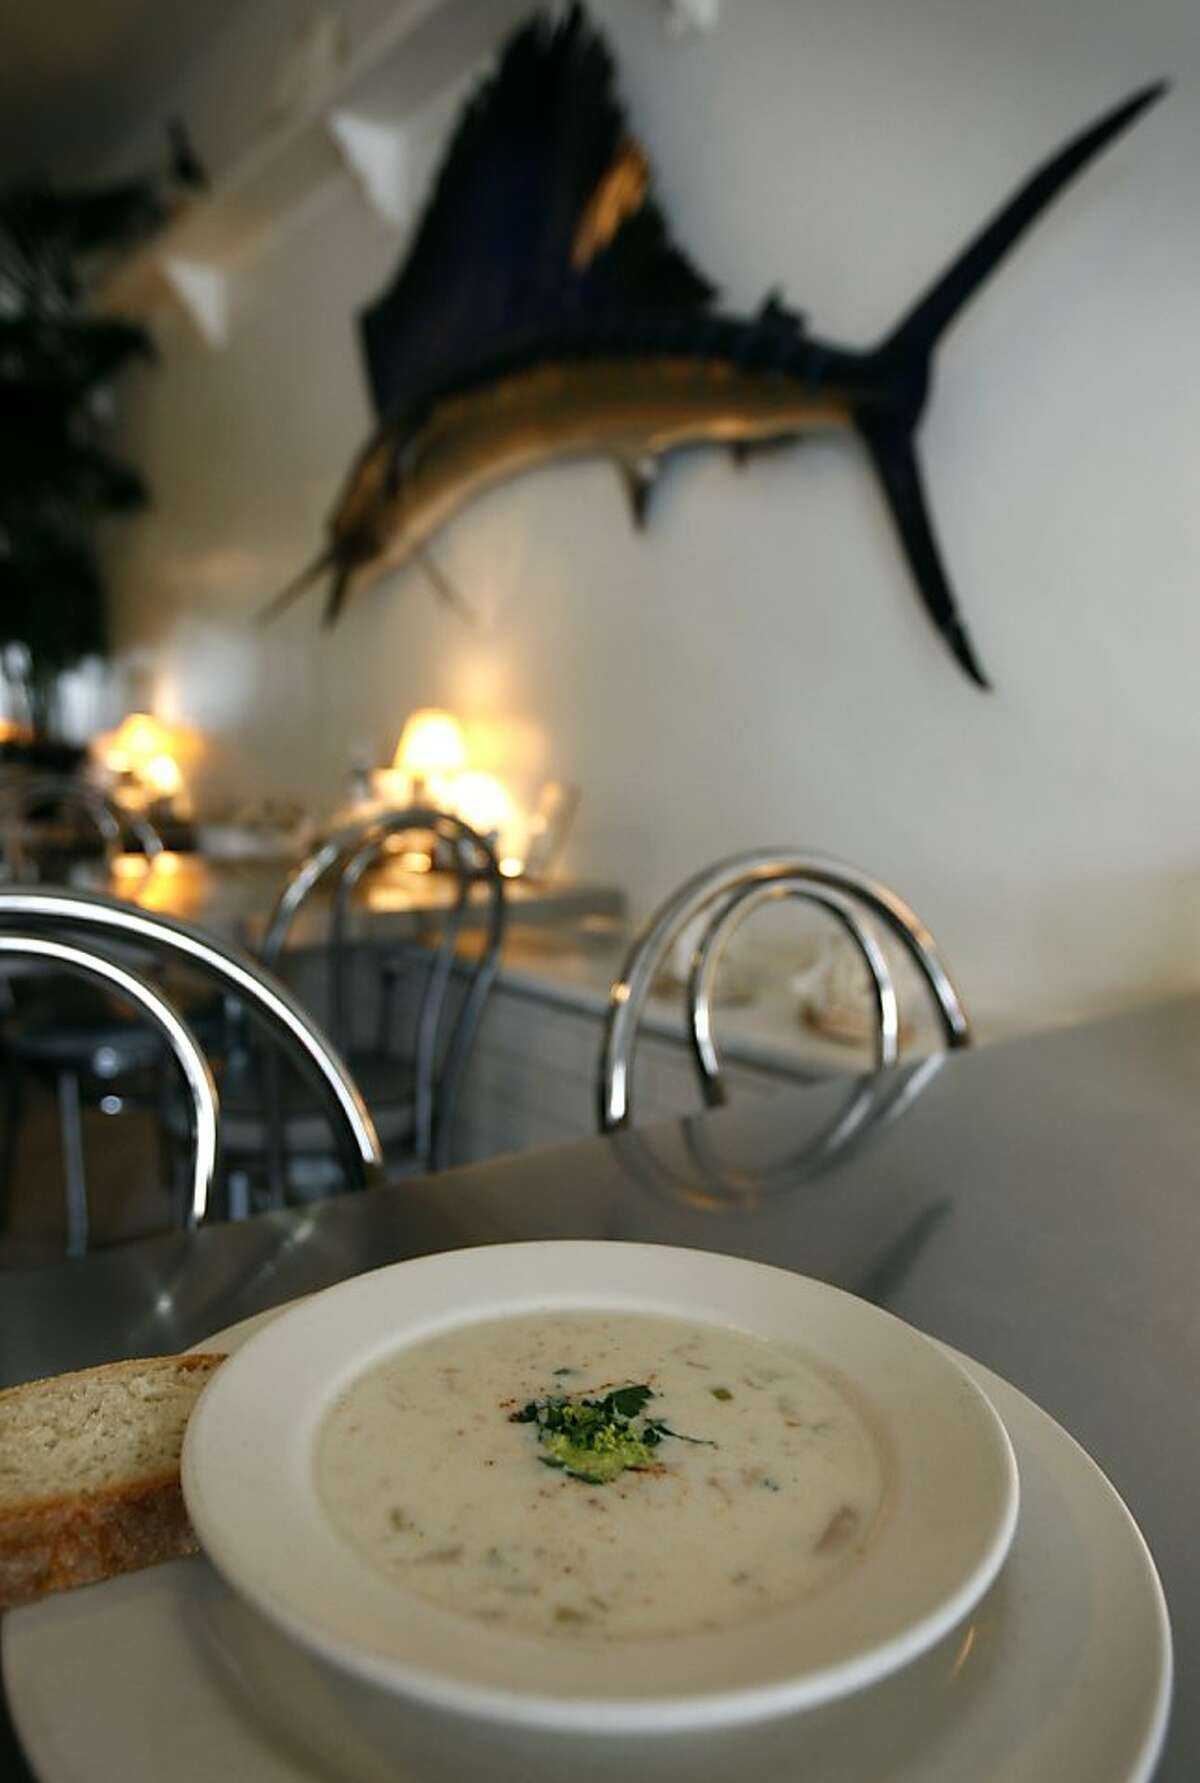 A bowl of Boston clam chowder is seen at the Anchor Oyster Bar restaurant in San Francisco, Calif., on Tuesday, Nov. 10, 2009.